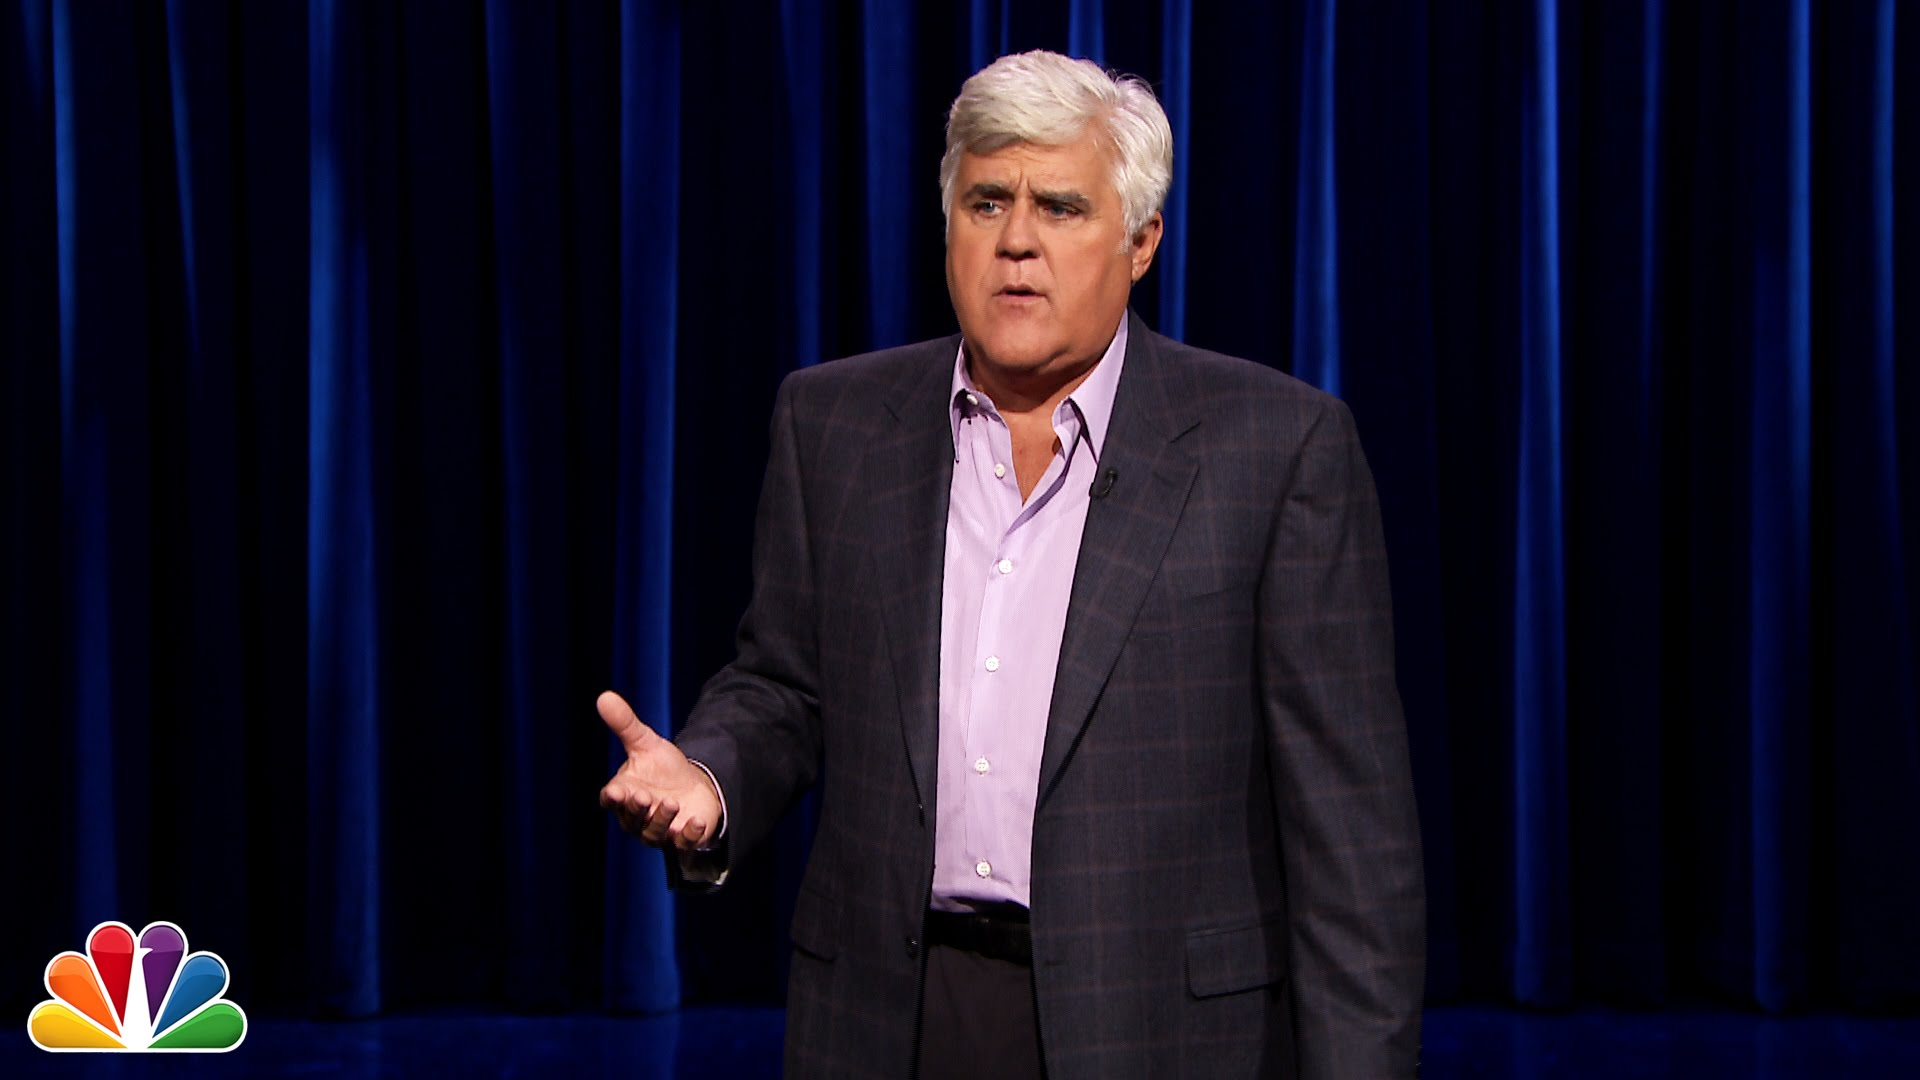 Jay Leno Stand-Up